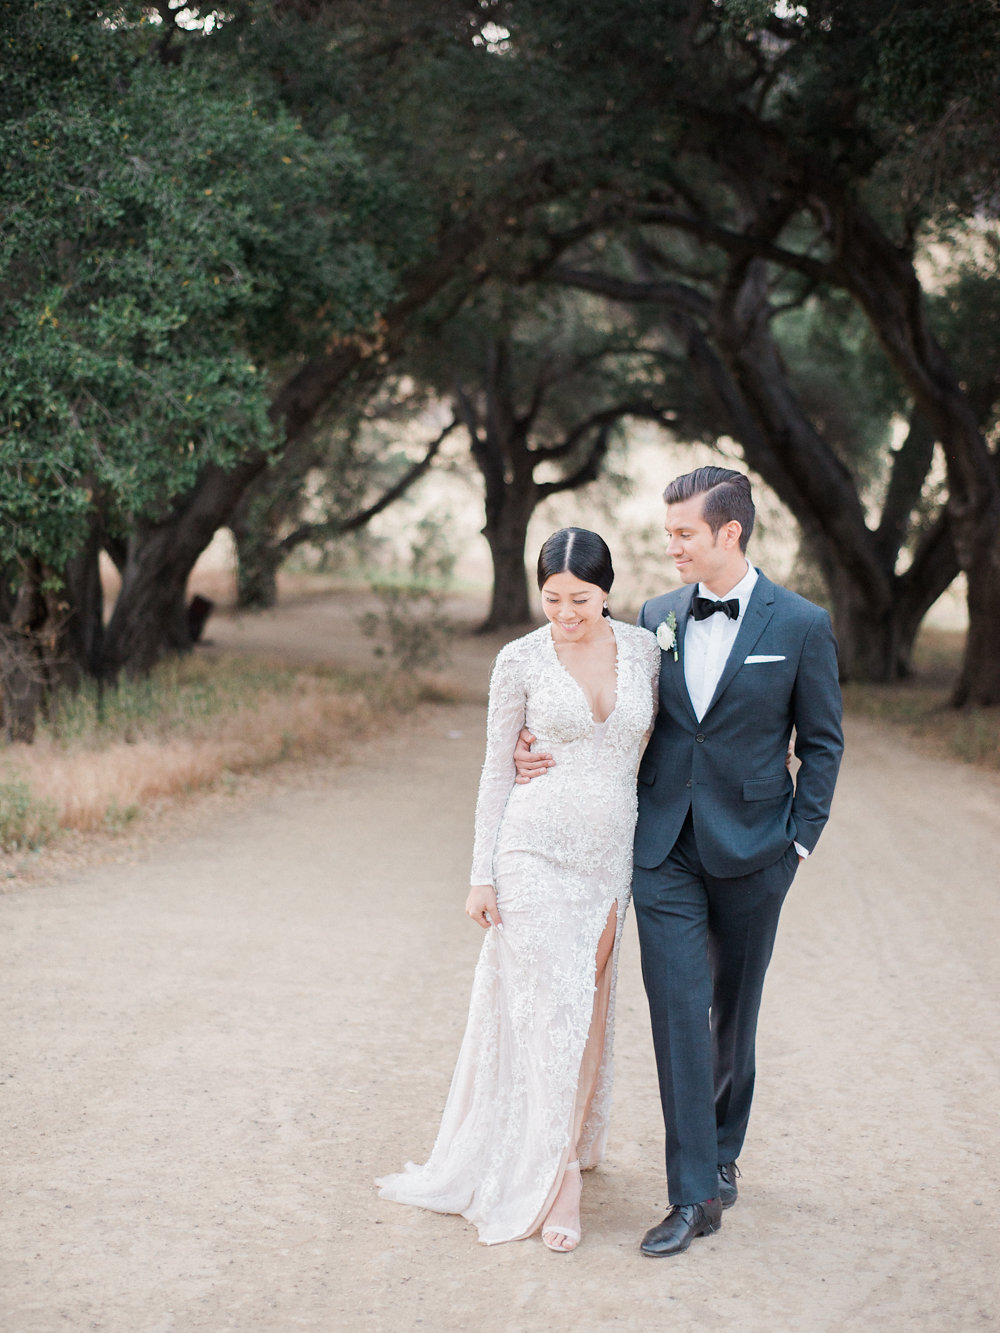 glam bridal looks - photo by Anya Kernes Photography http://ruffledblog.com/organic-wedding-inspiration-with-shades-of-blue